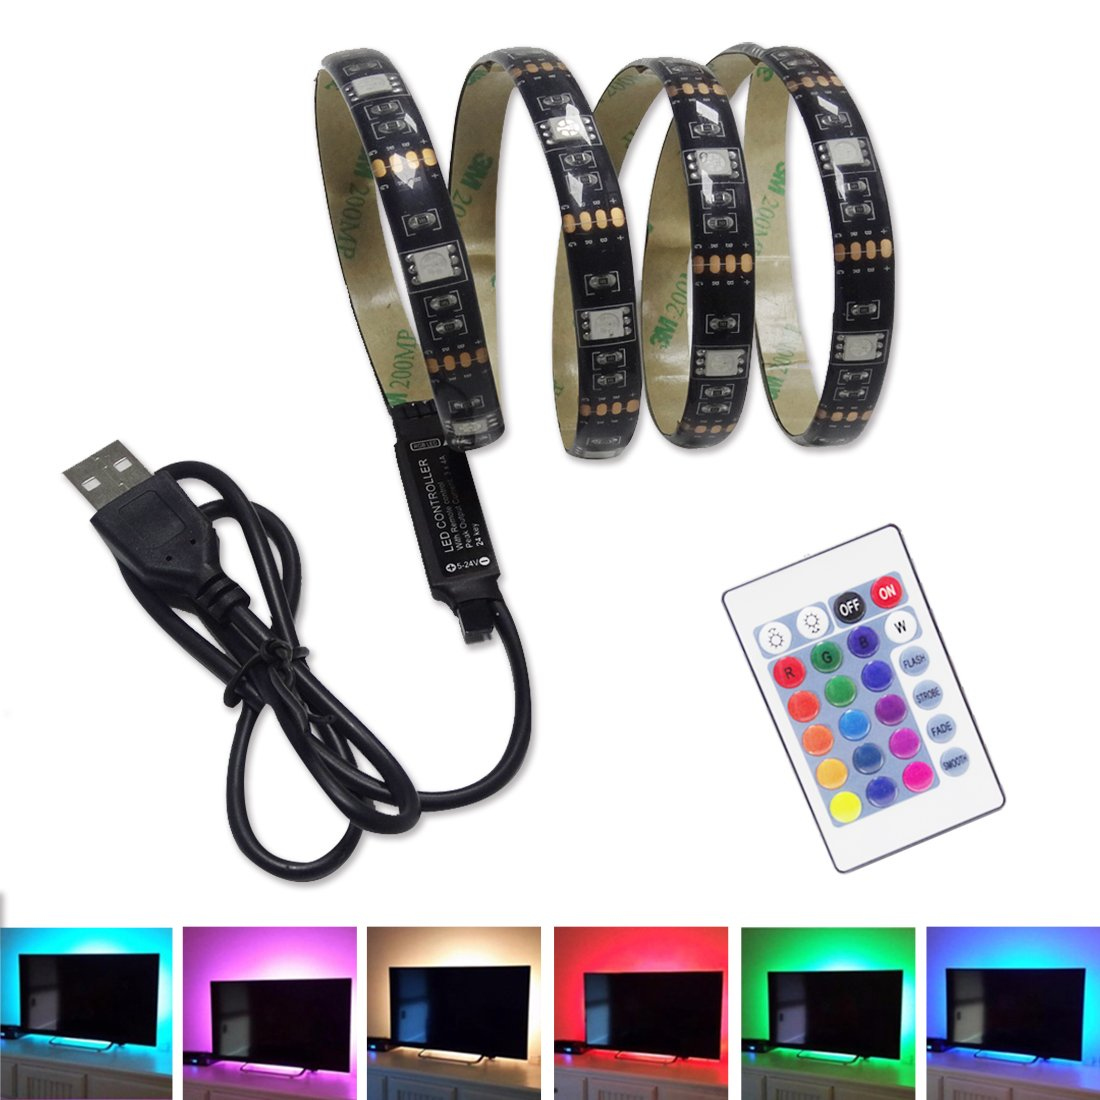 SINGSICO LED Strips Bias Backlight Kit With Dimmable Remote Control-Multi Color USB Strip Lights 6.56ft(2M) for 40-60inch Flat HDTV,Desktop PC